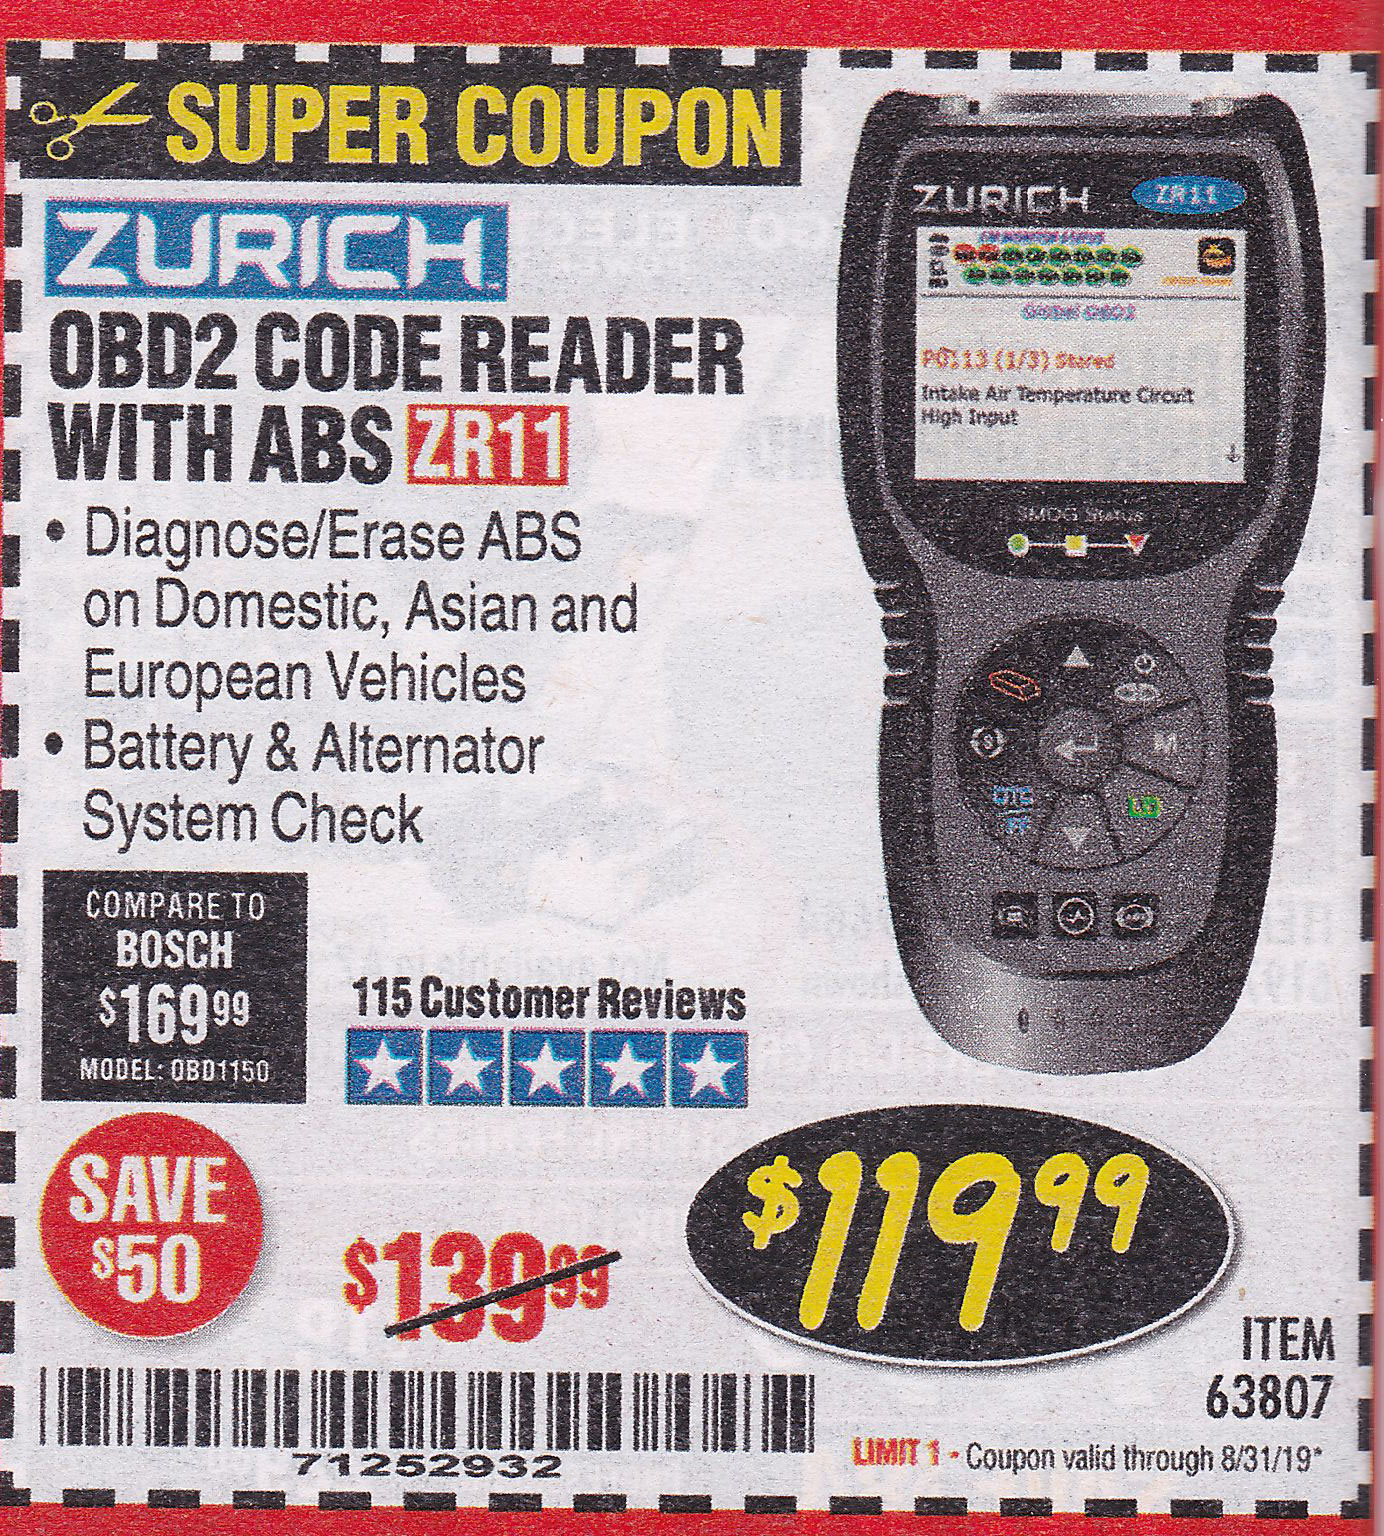 www.hfqpdb.com - ZURICH OBD2 CODE READER WITH ABS ZR11 Lot No. 63807